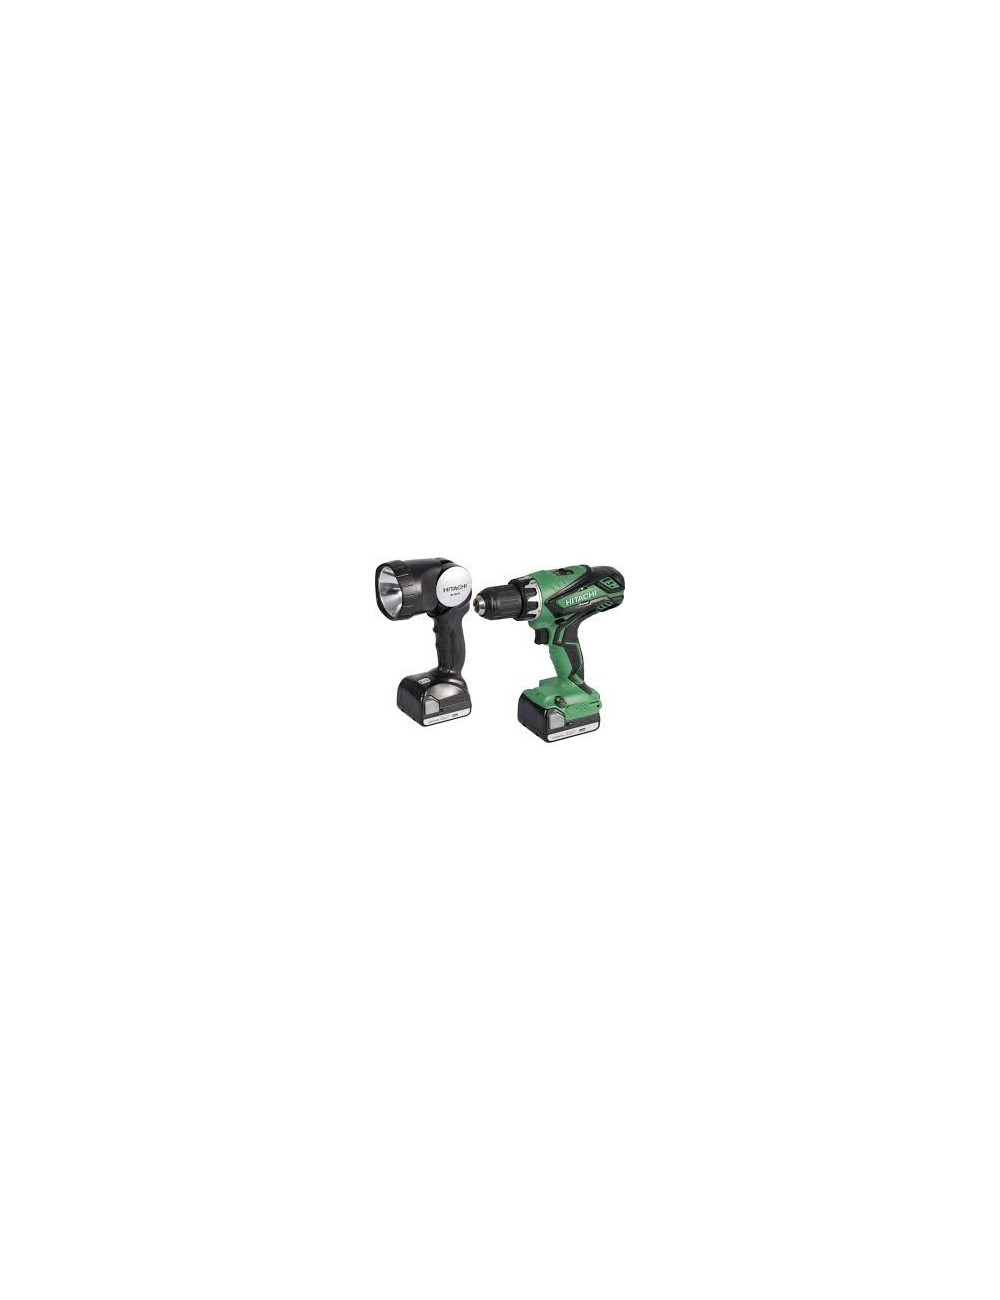 PERCEUSE-VISSEUSE 13mm 14,4V-2.5Ah HITACHI Li-lion DS14DJLLB